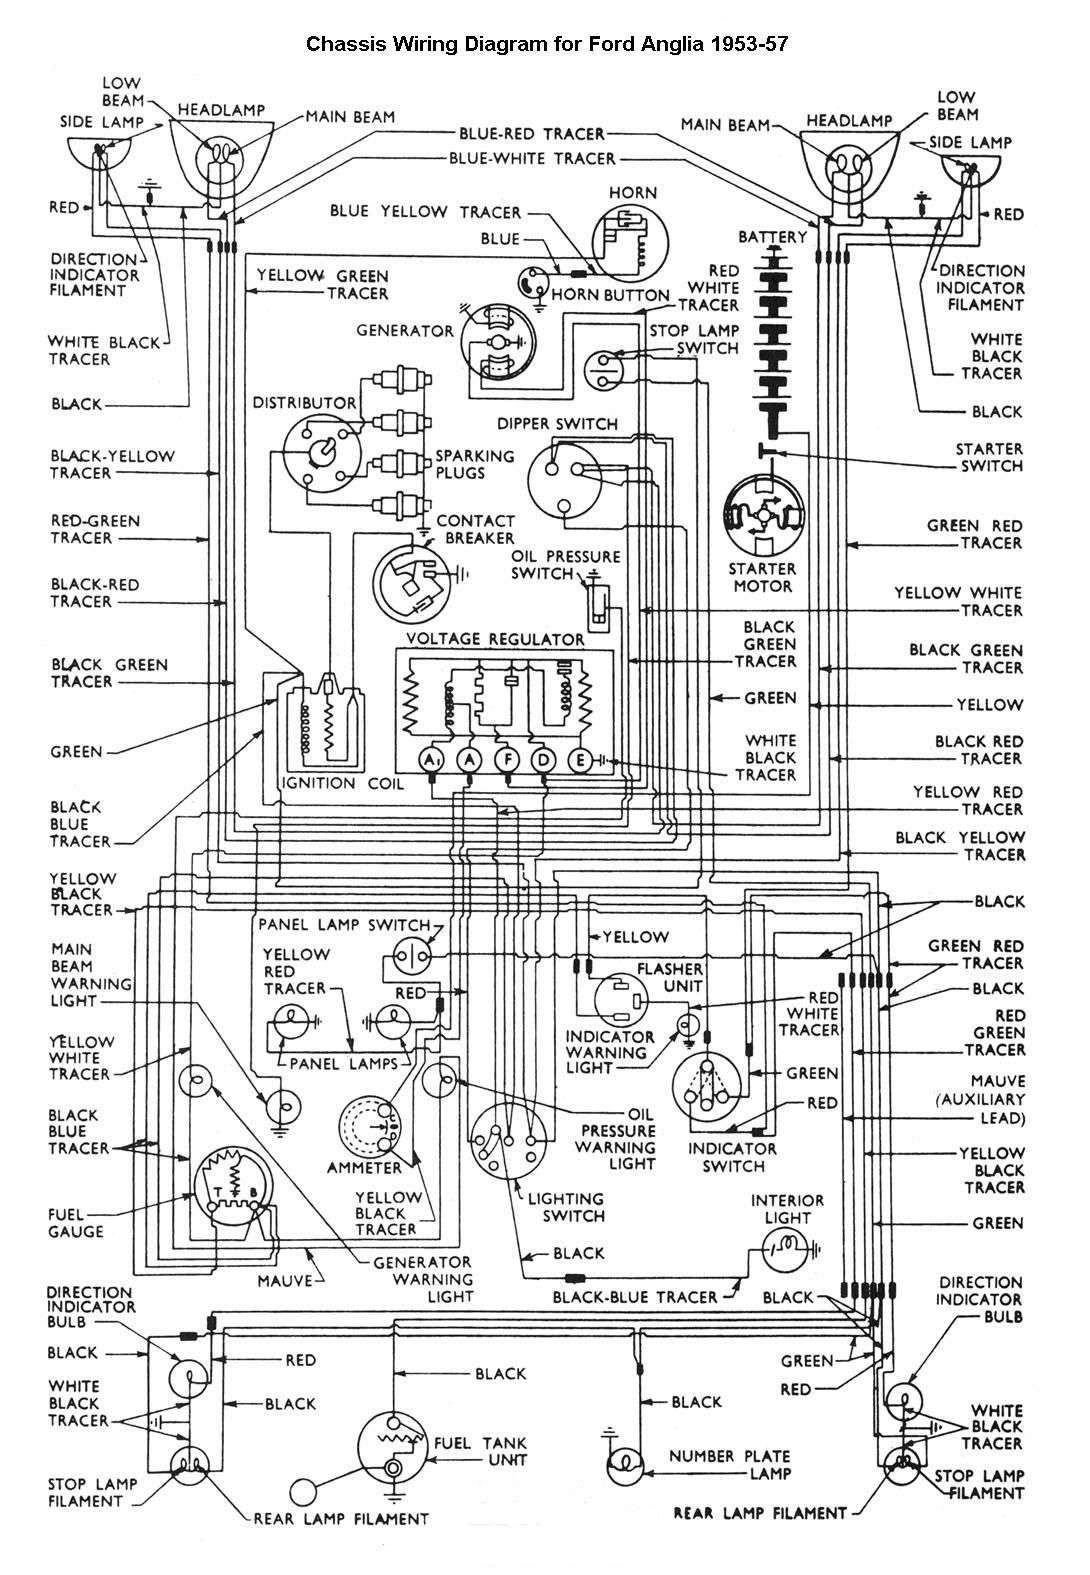 wiring diagram cars trucks wiring diagram cars trucks truck horn car horn wiring diagram engine picture [ 1090 x 1575 Pixel ]